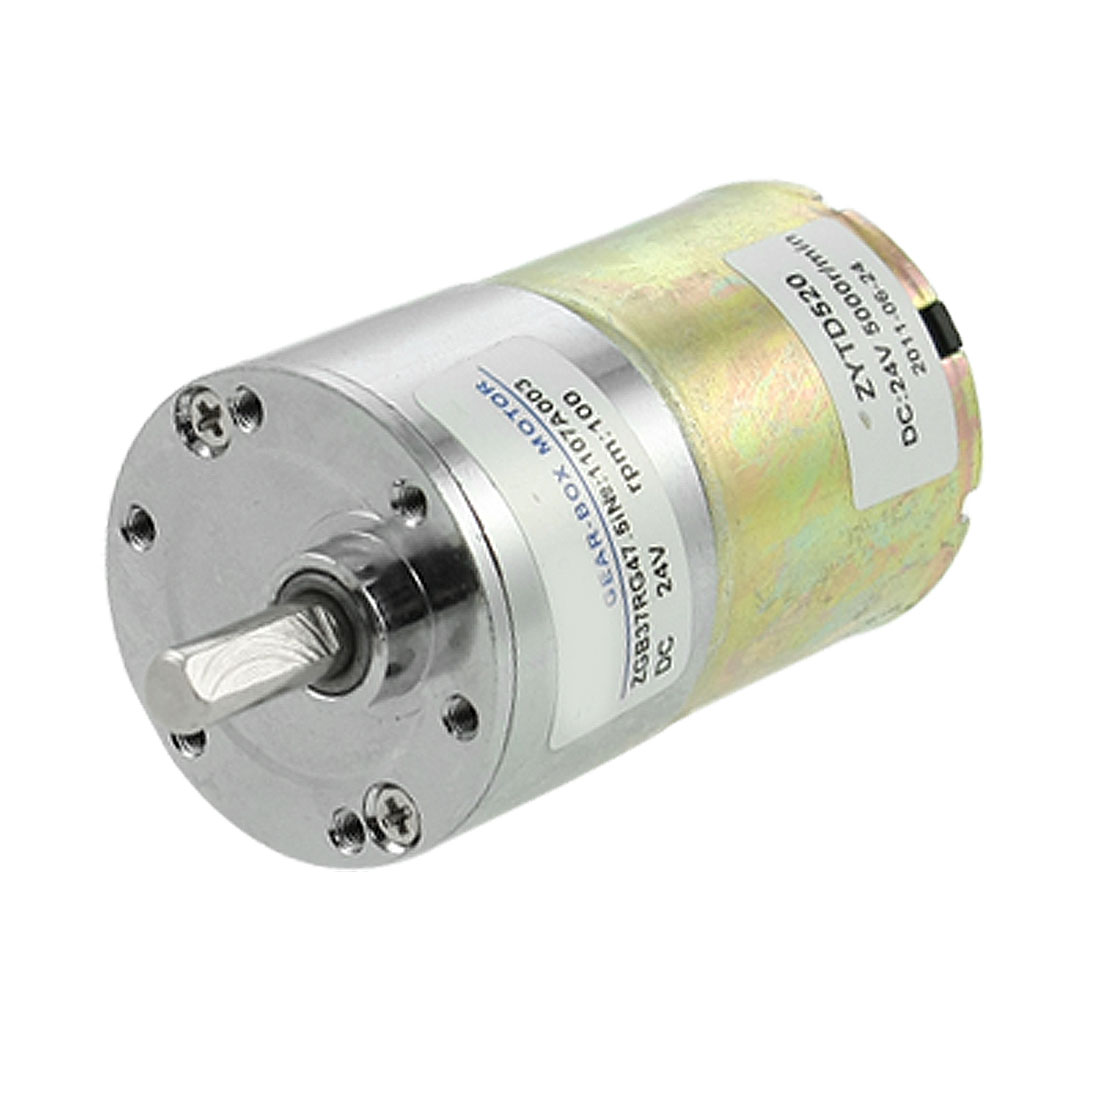 100RPM Output Speed 24V 0.33A Speed Reducing DC Geared Motor